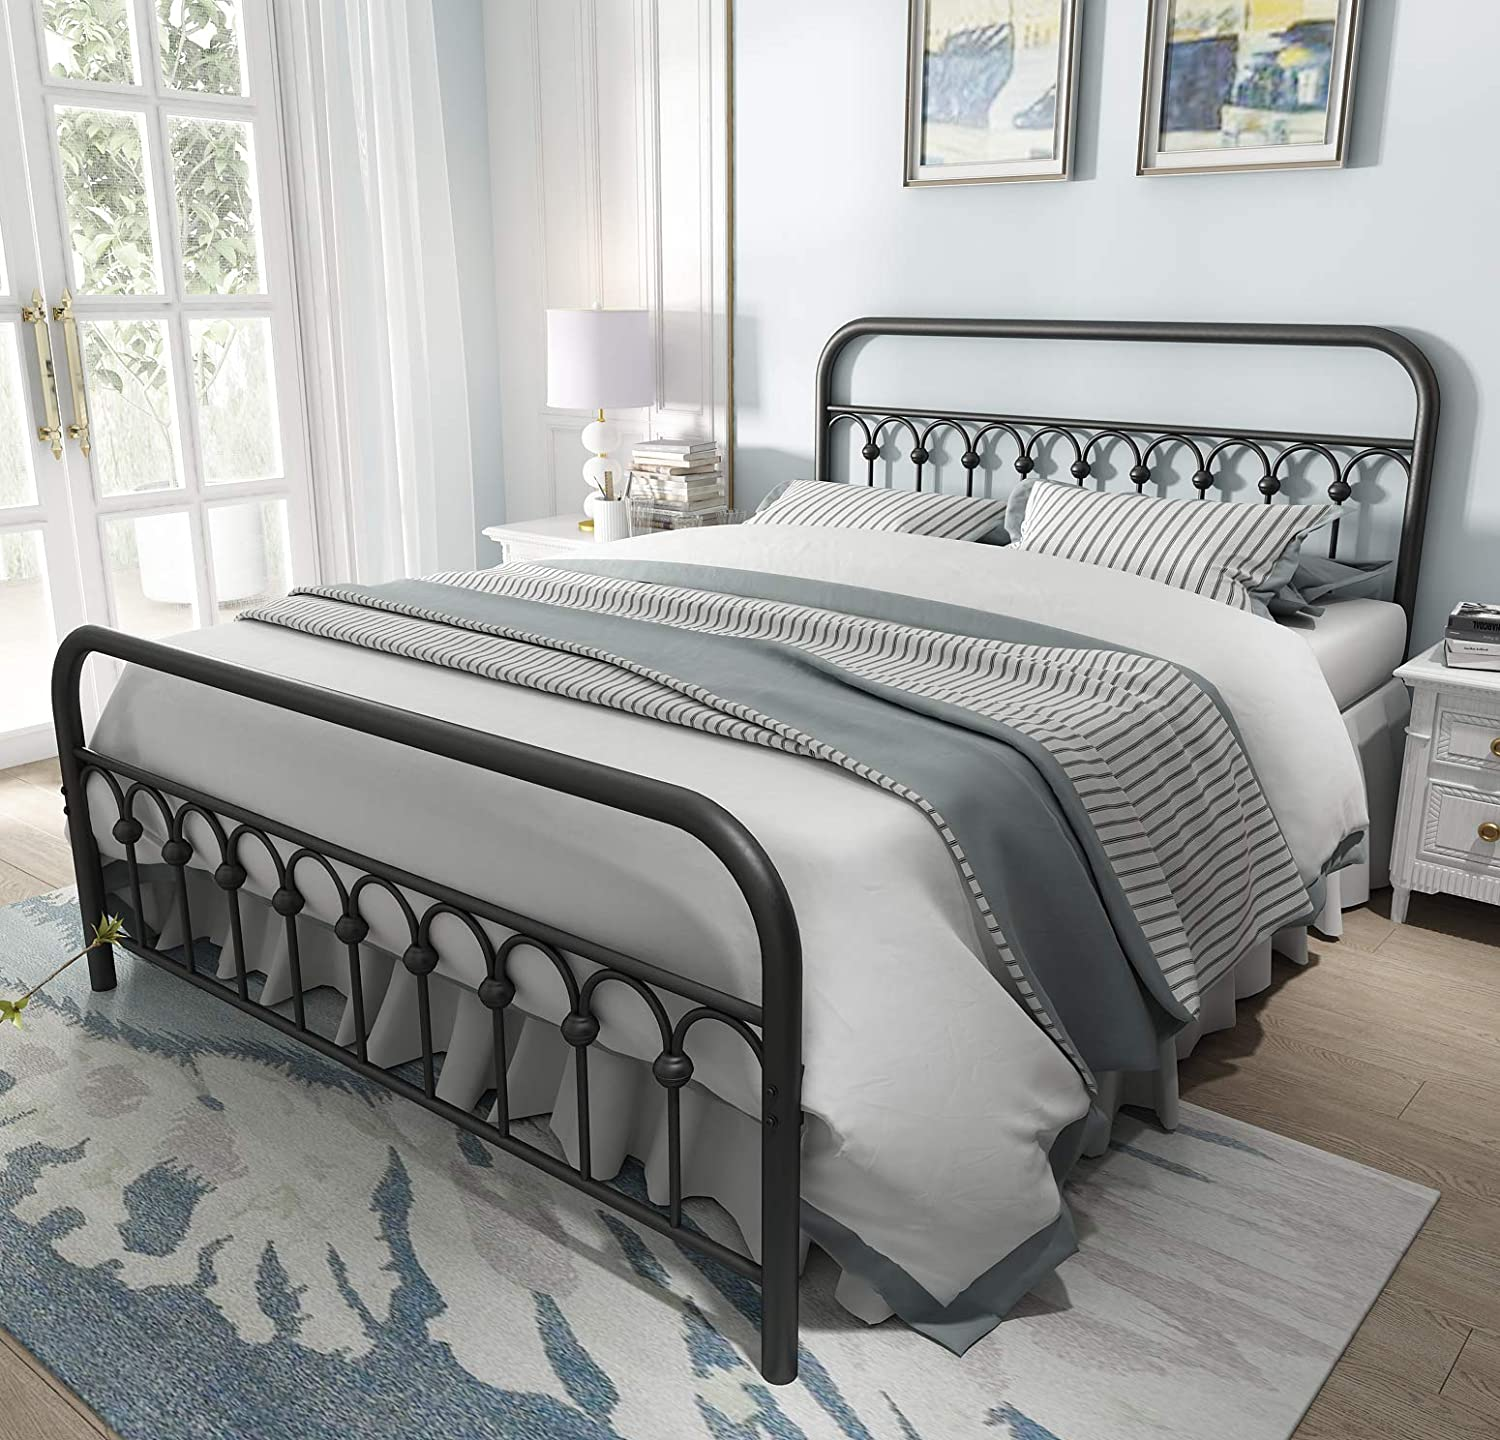 Vintage Sturdy Queen Size Metal Bed Frame with Headboard and Footboard Basic Bed Frame No Box Spring Needed (Queen,Black)